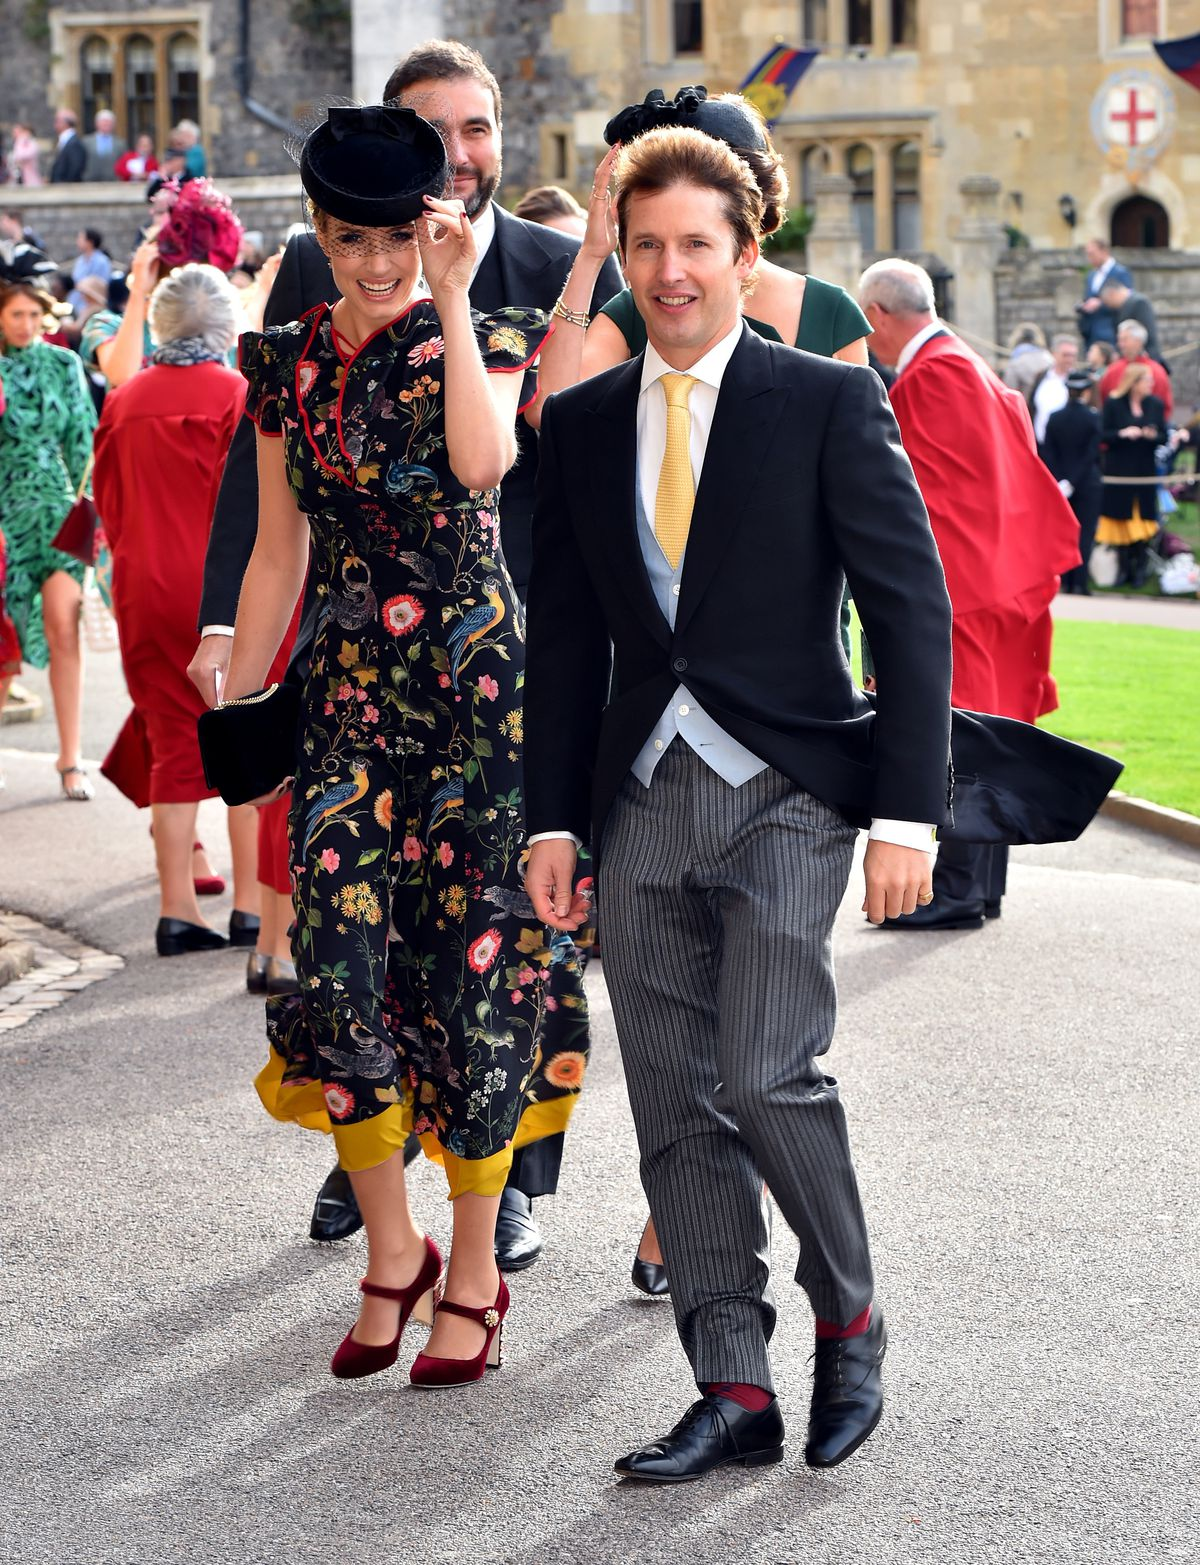 James Blunt arrives wearing a navy and gray suit and a yellow tie.